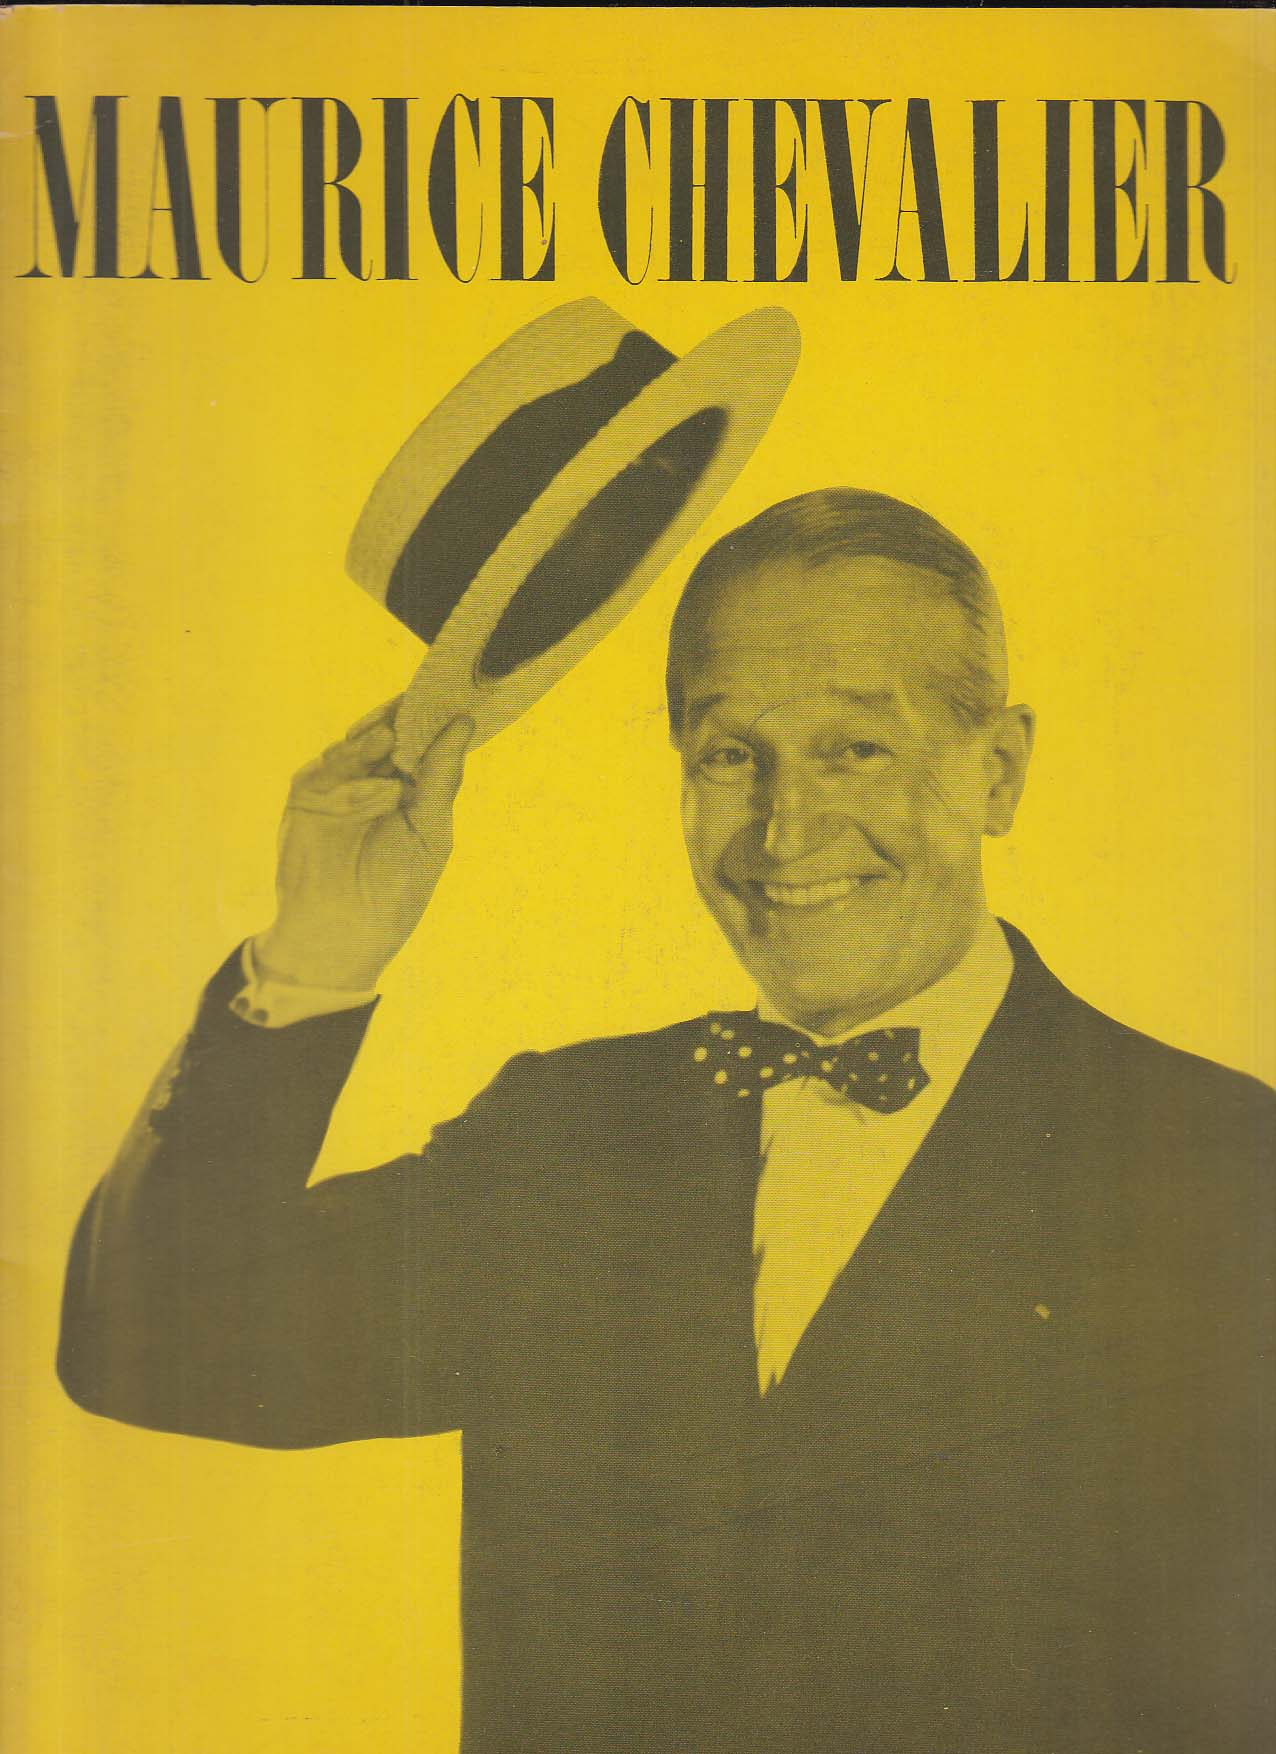 Image for Maurice Chevalier performance program 1960s